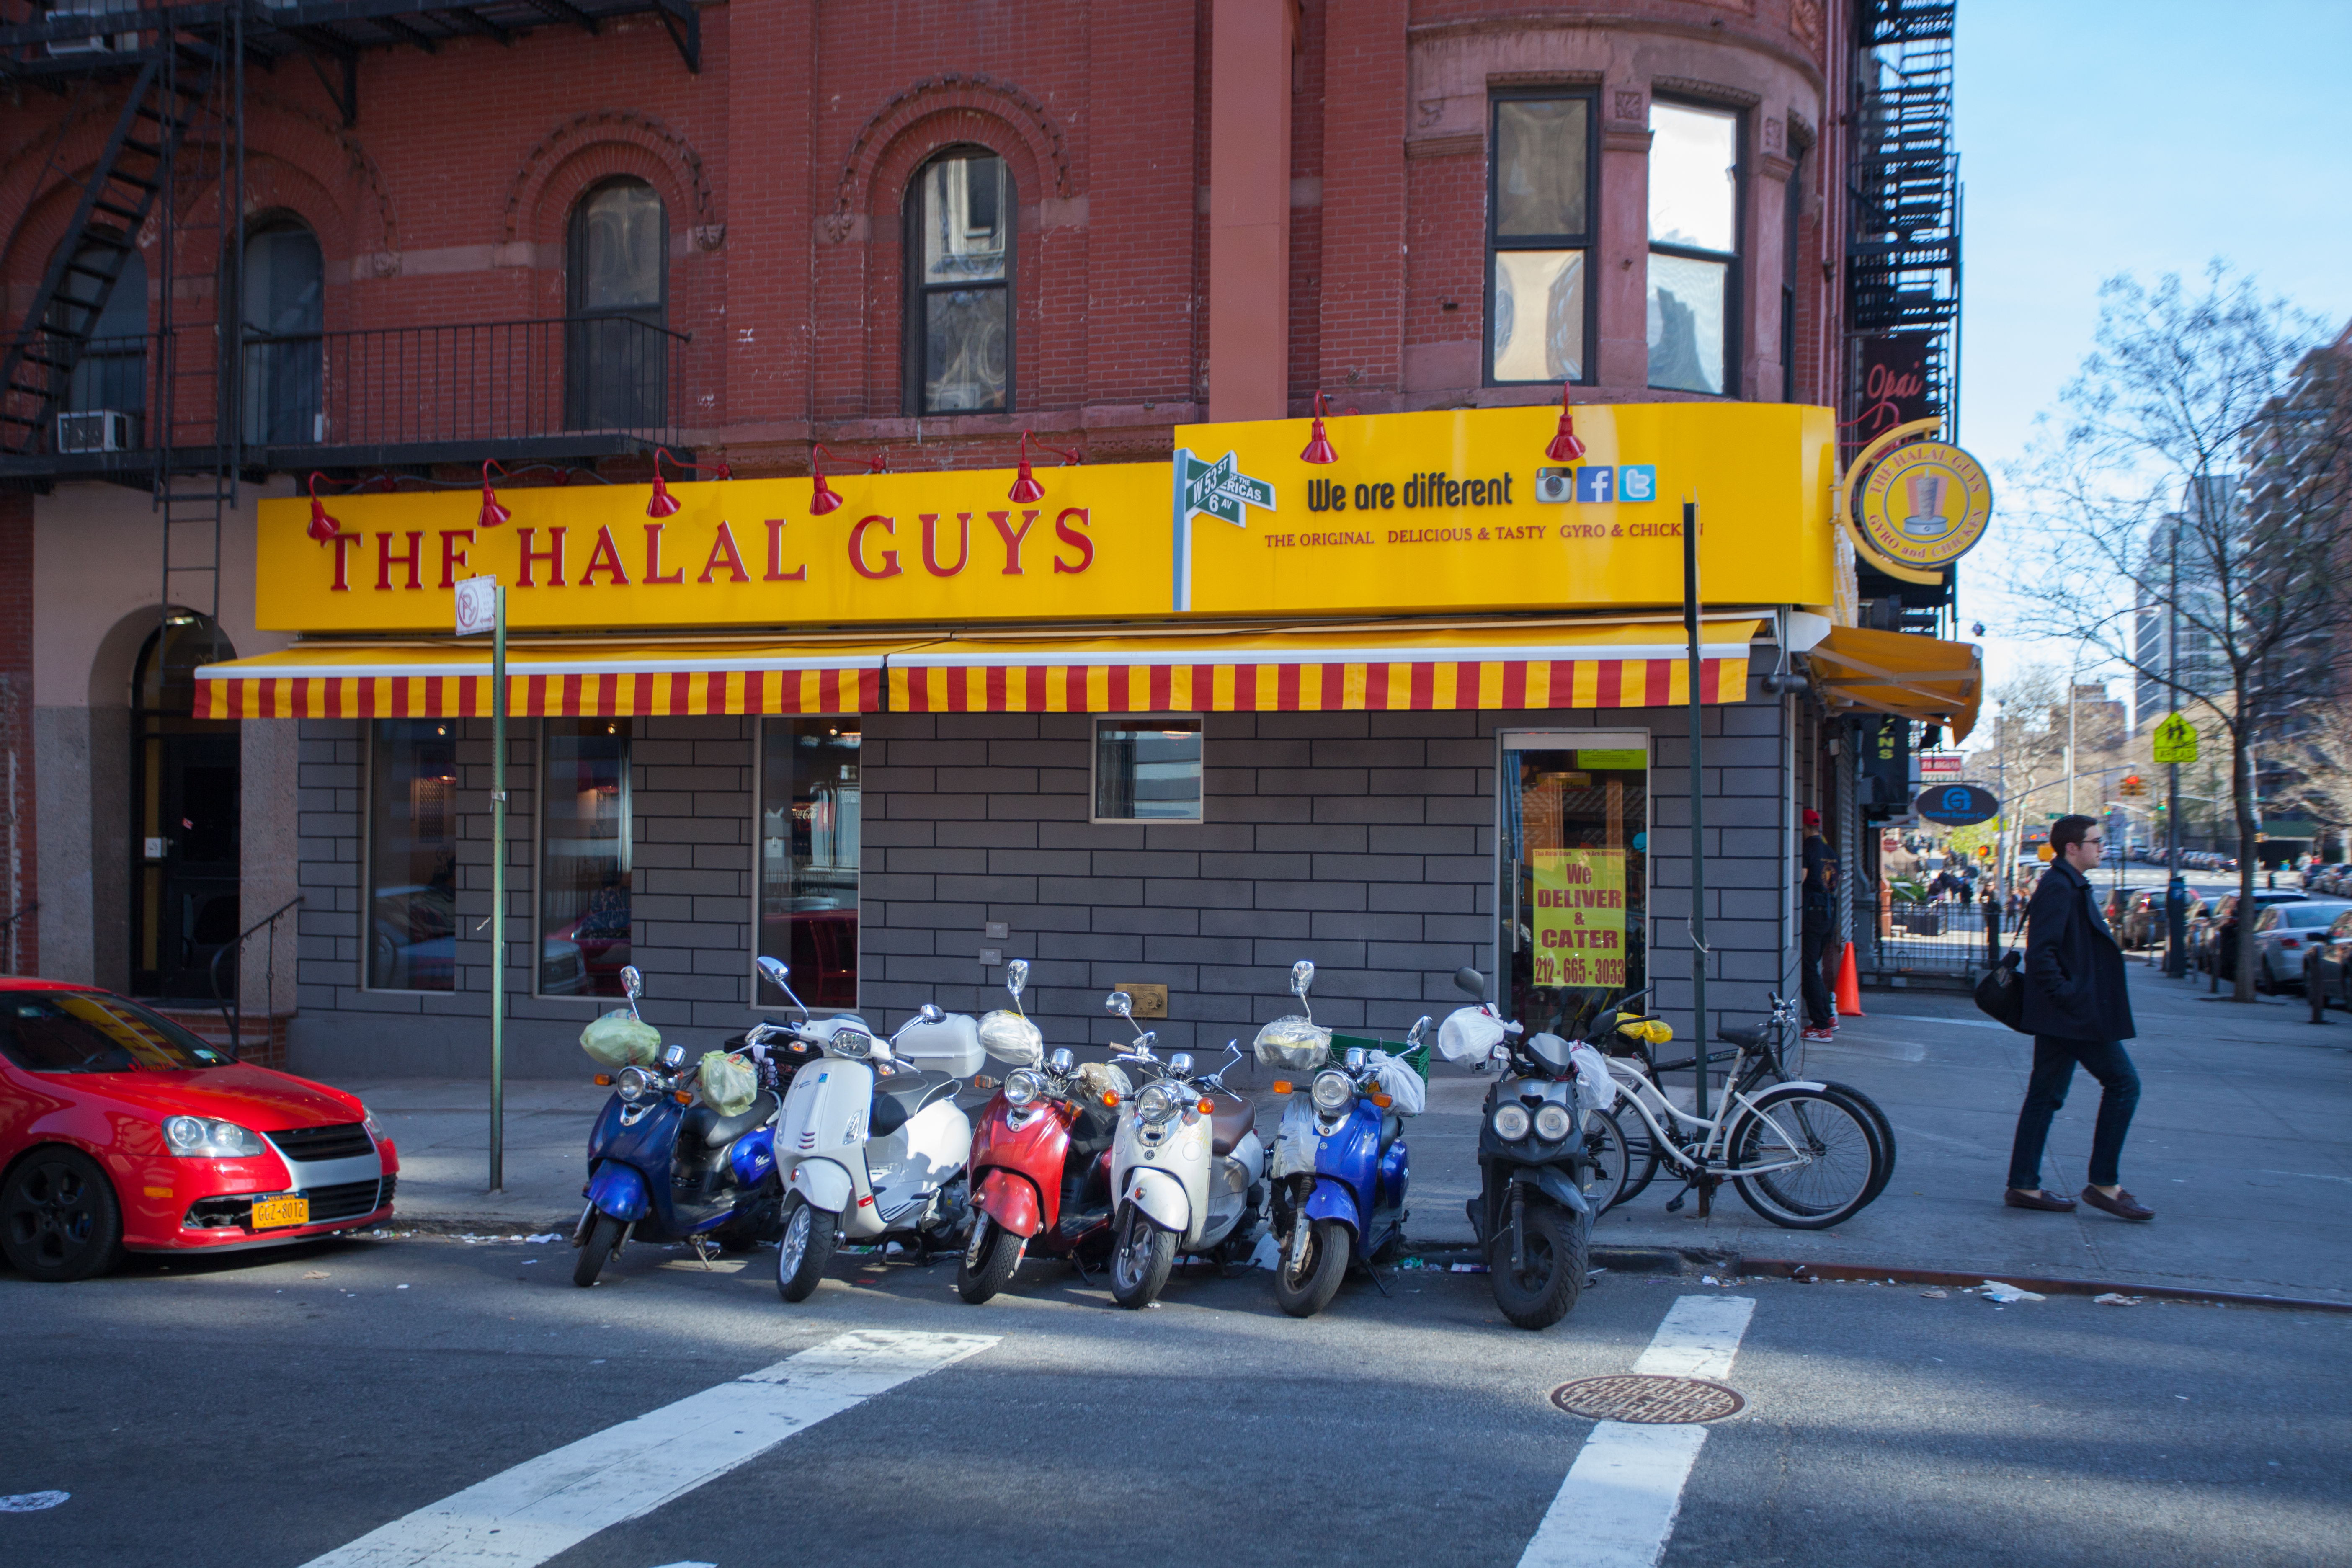 Exterior signage at a New York location for The Halal Guys.